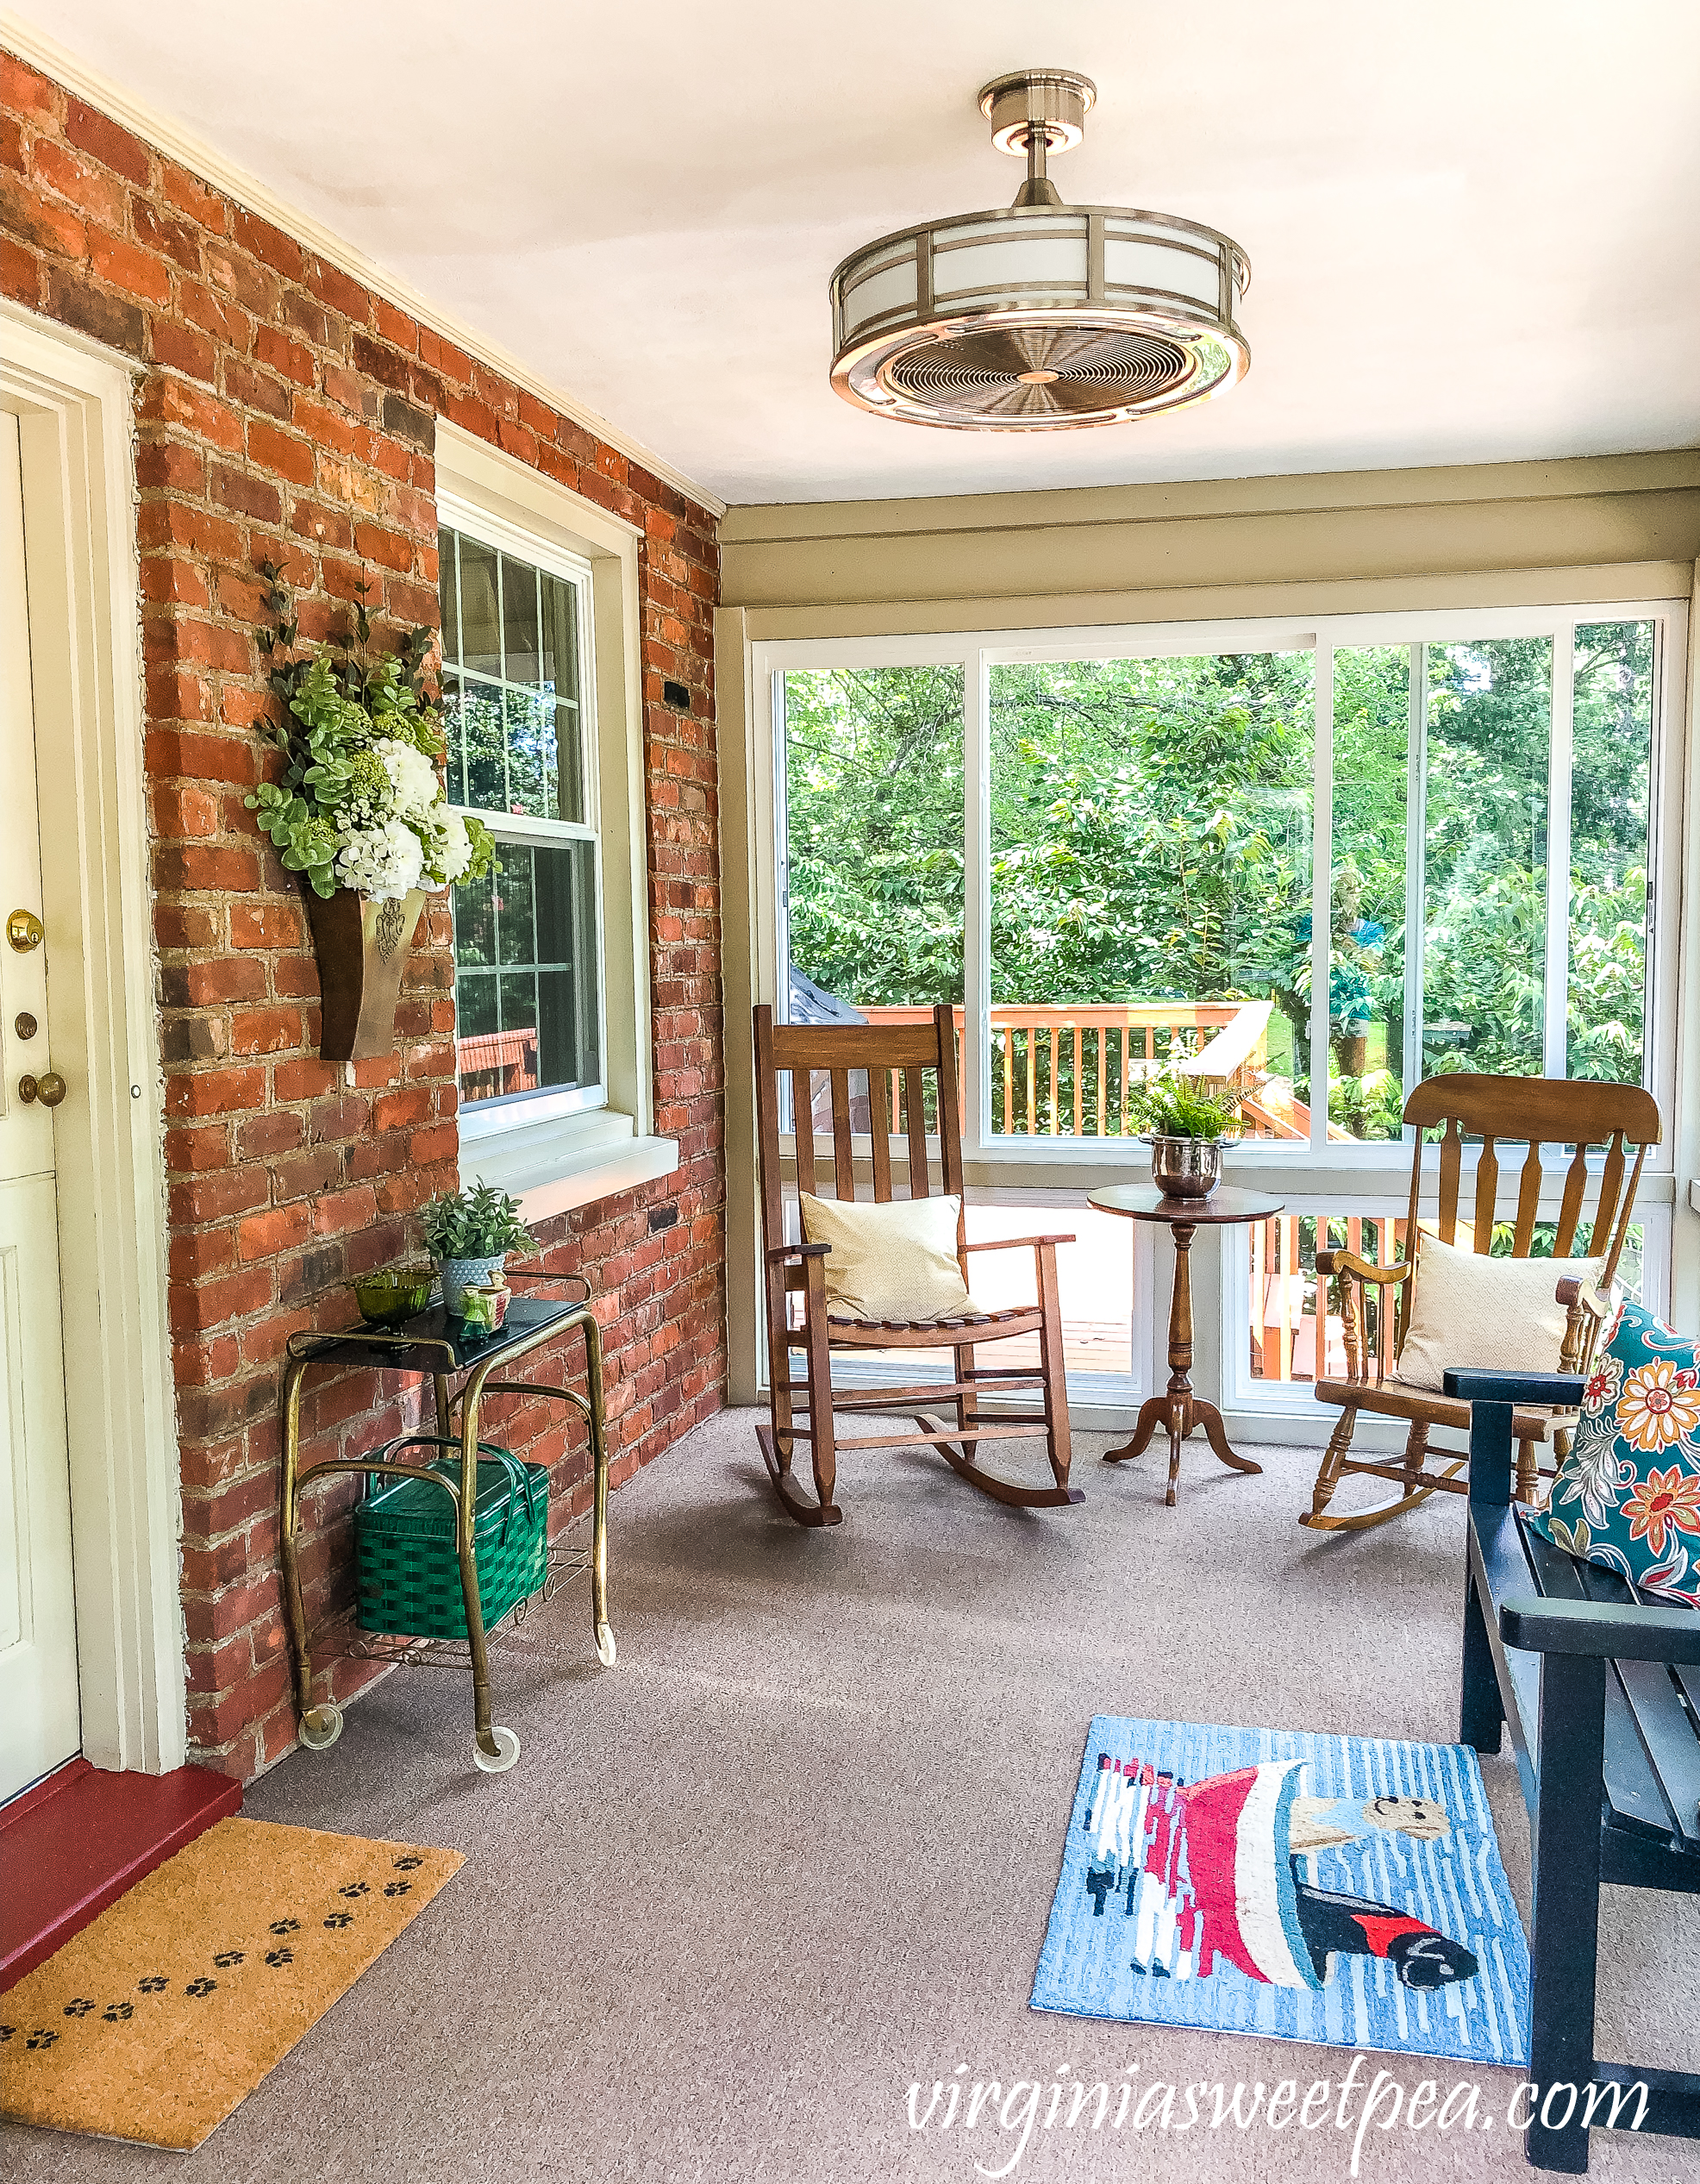 "Home Decorators Collection Brette 23"" Indoor/Outdoor Brushed Nickel fan from Home Depot installed in a sunporch."